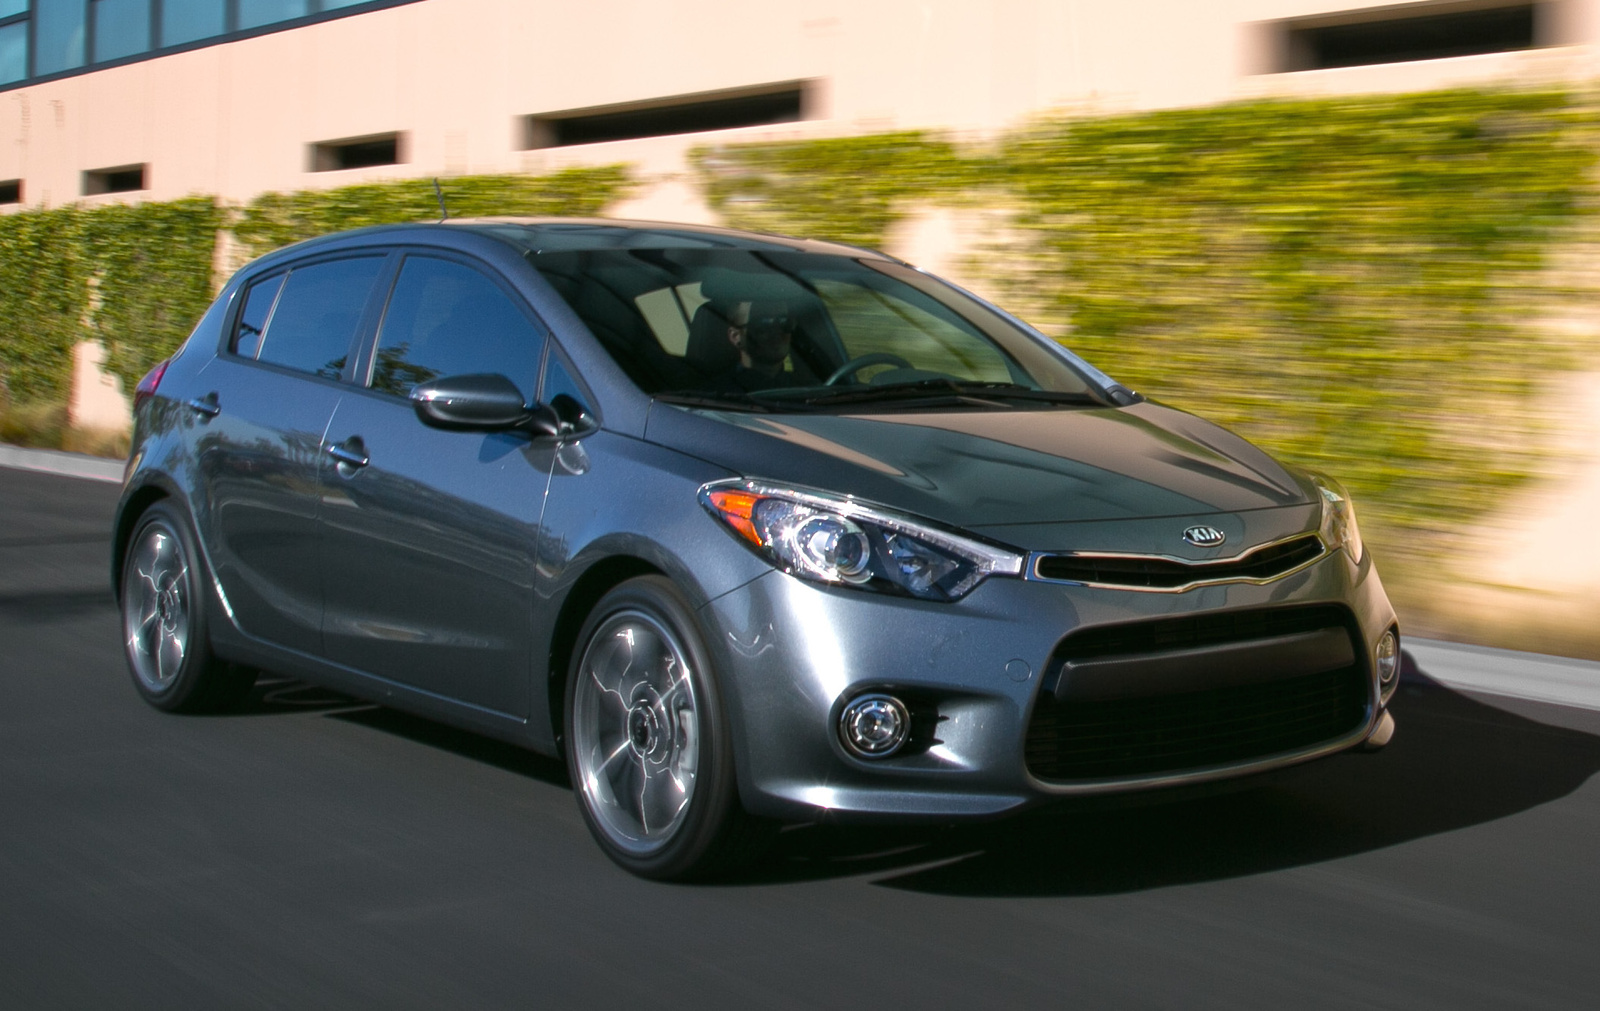 Kia Forte Review >> 2016 Kia Forte5 - Review - CarGurus